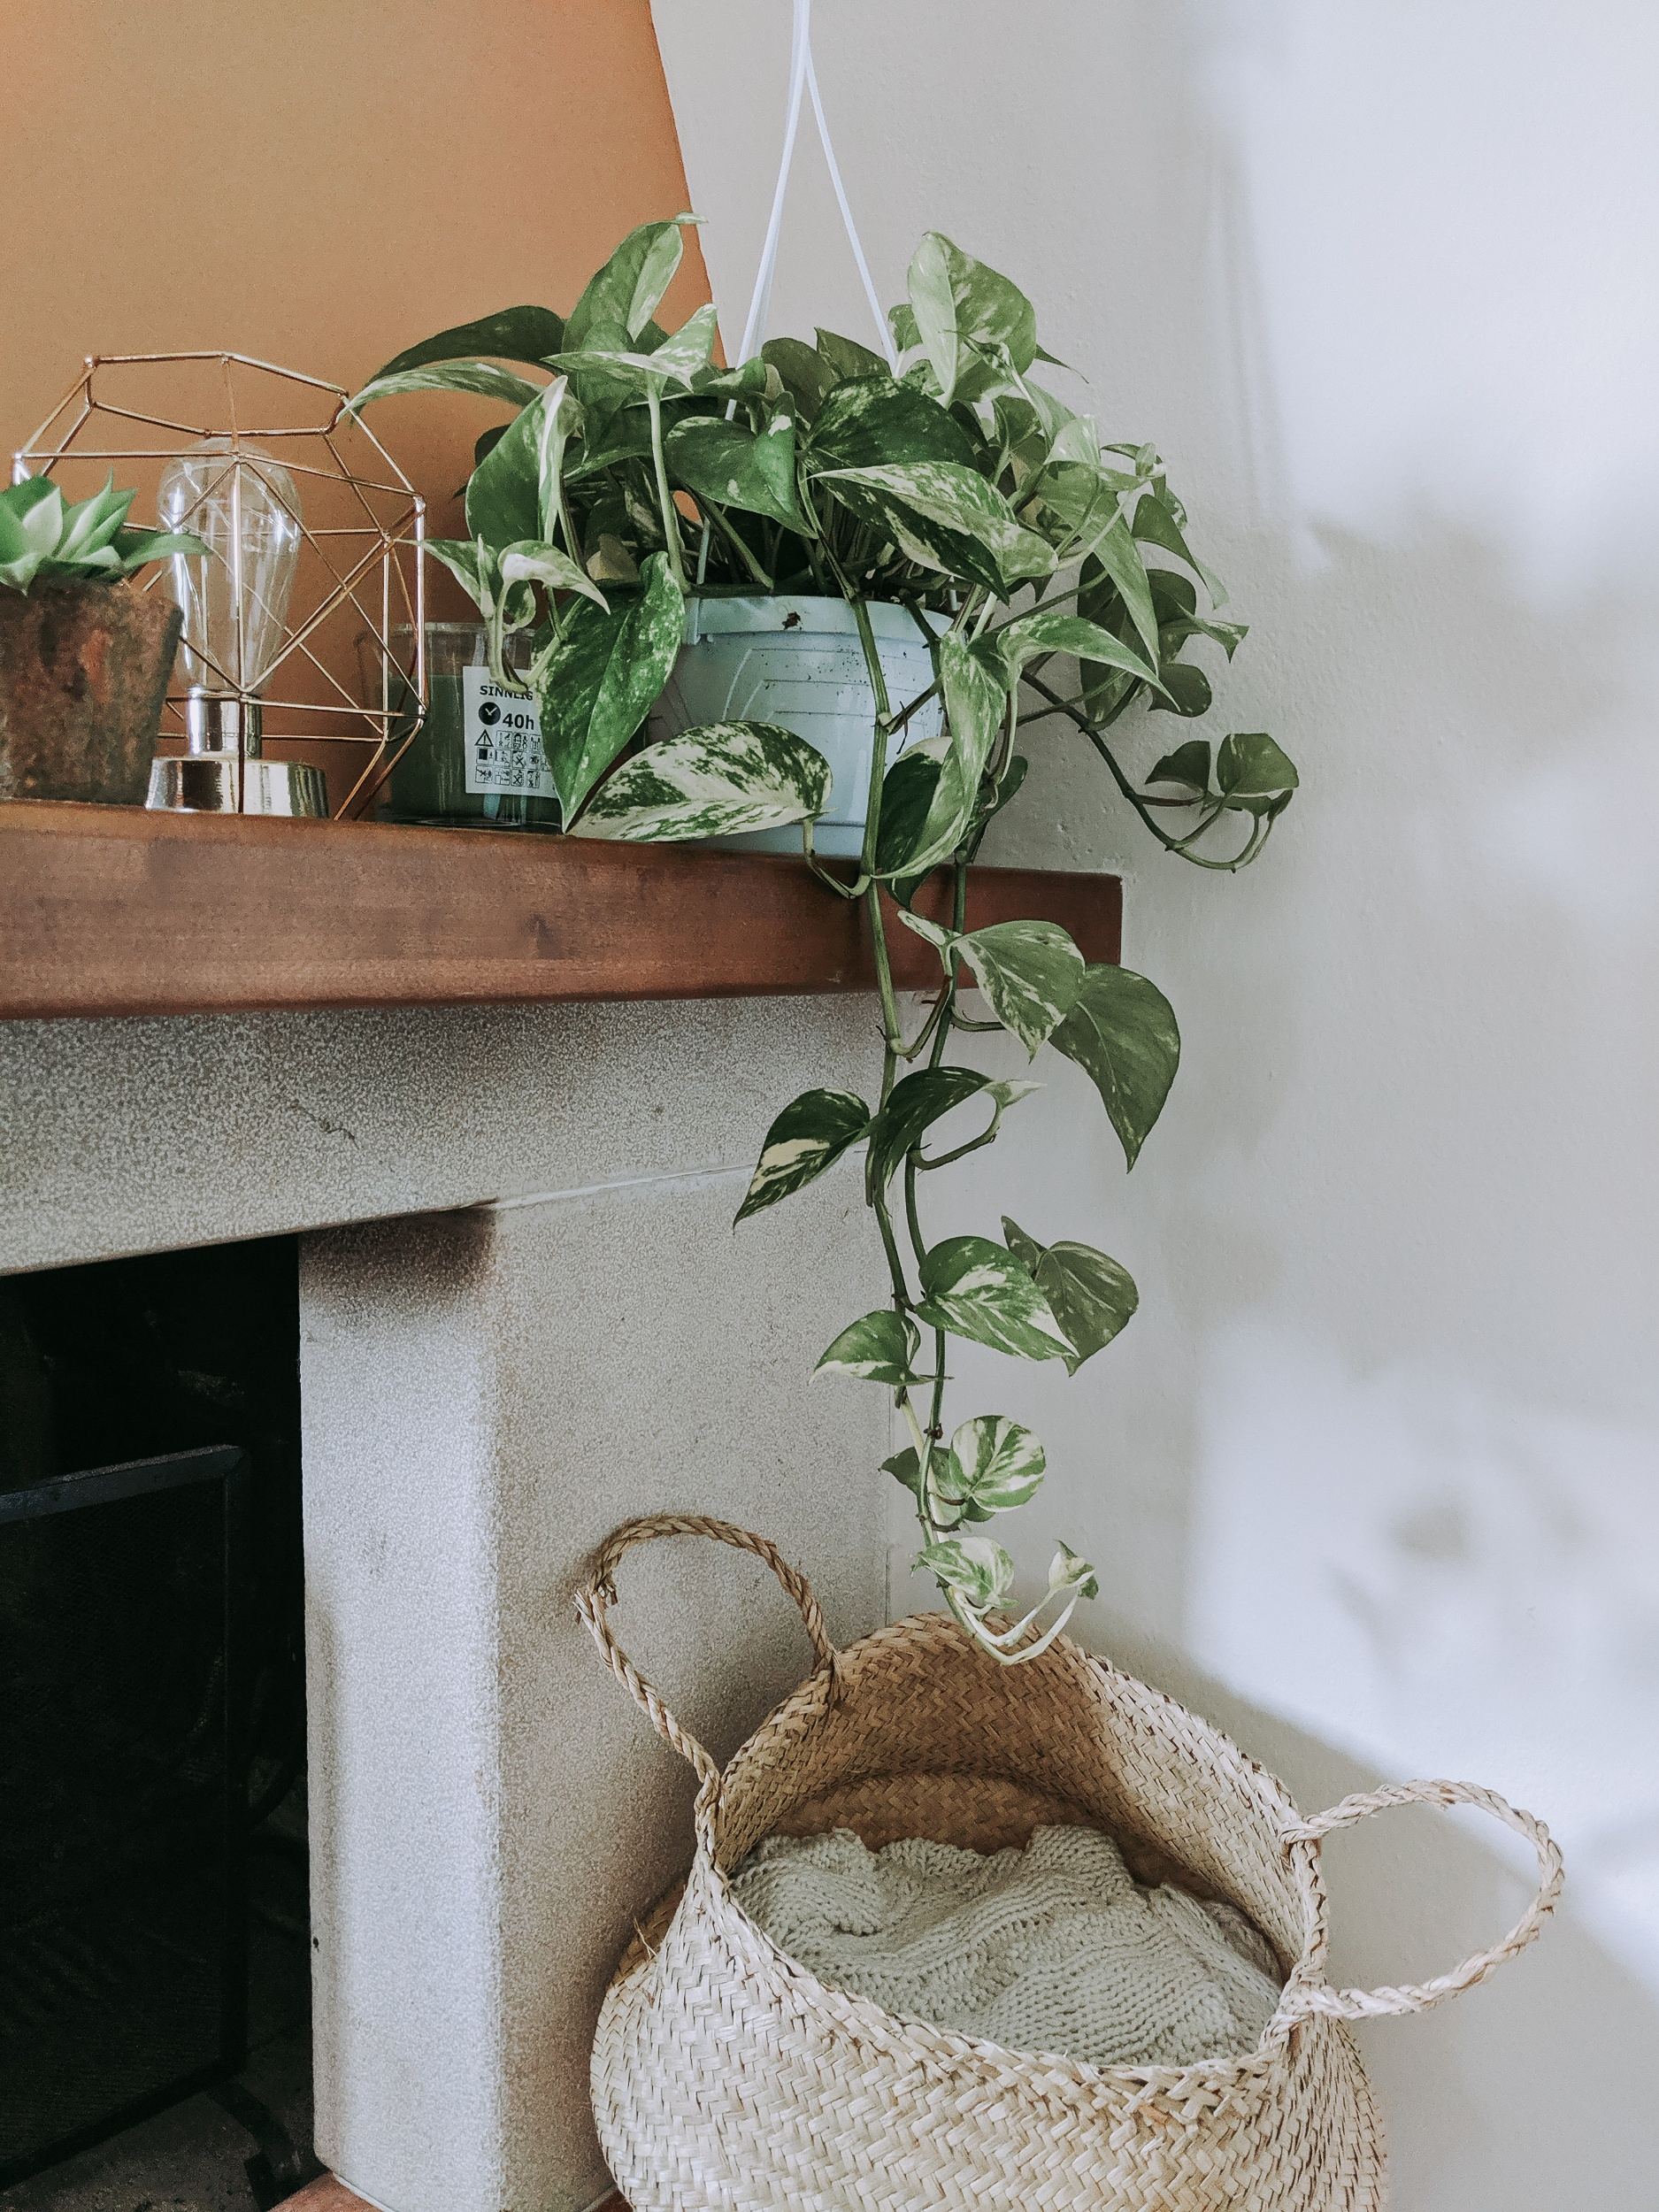 Golden Pothos on top of fireplace.